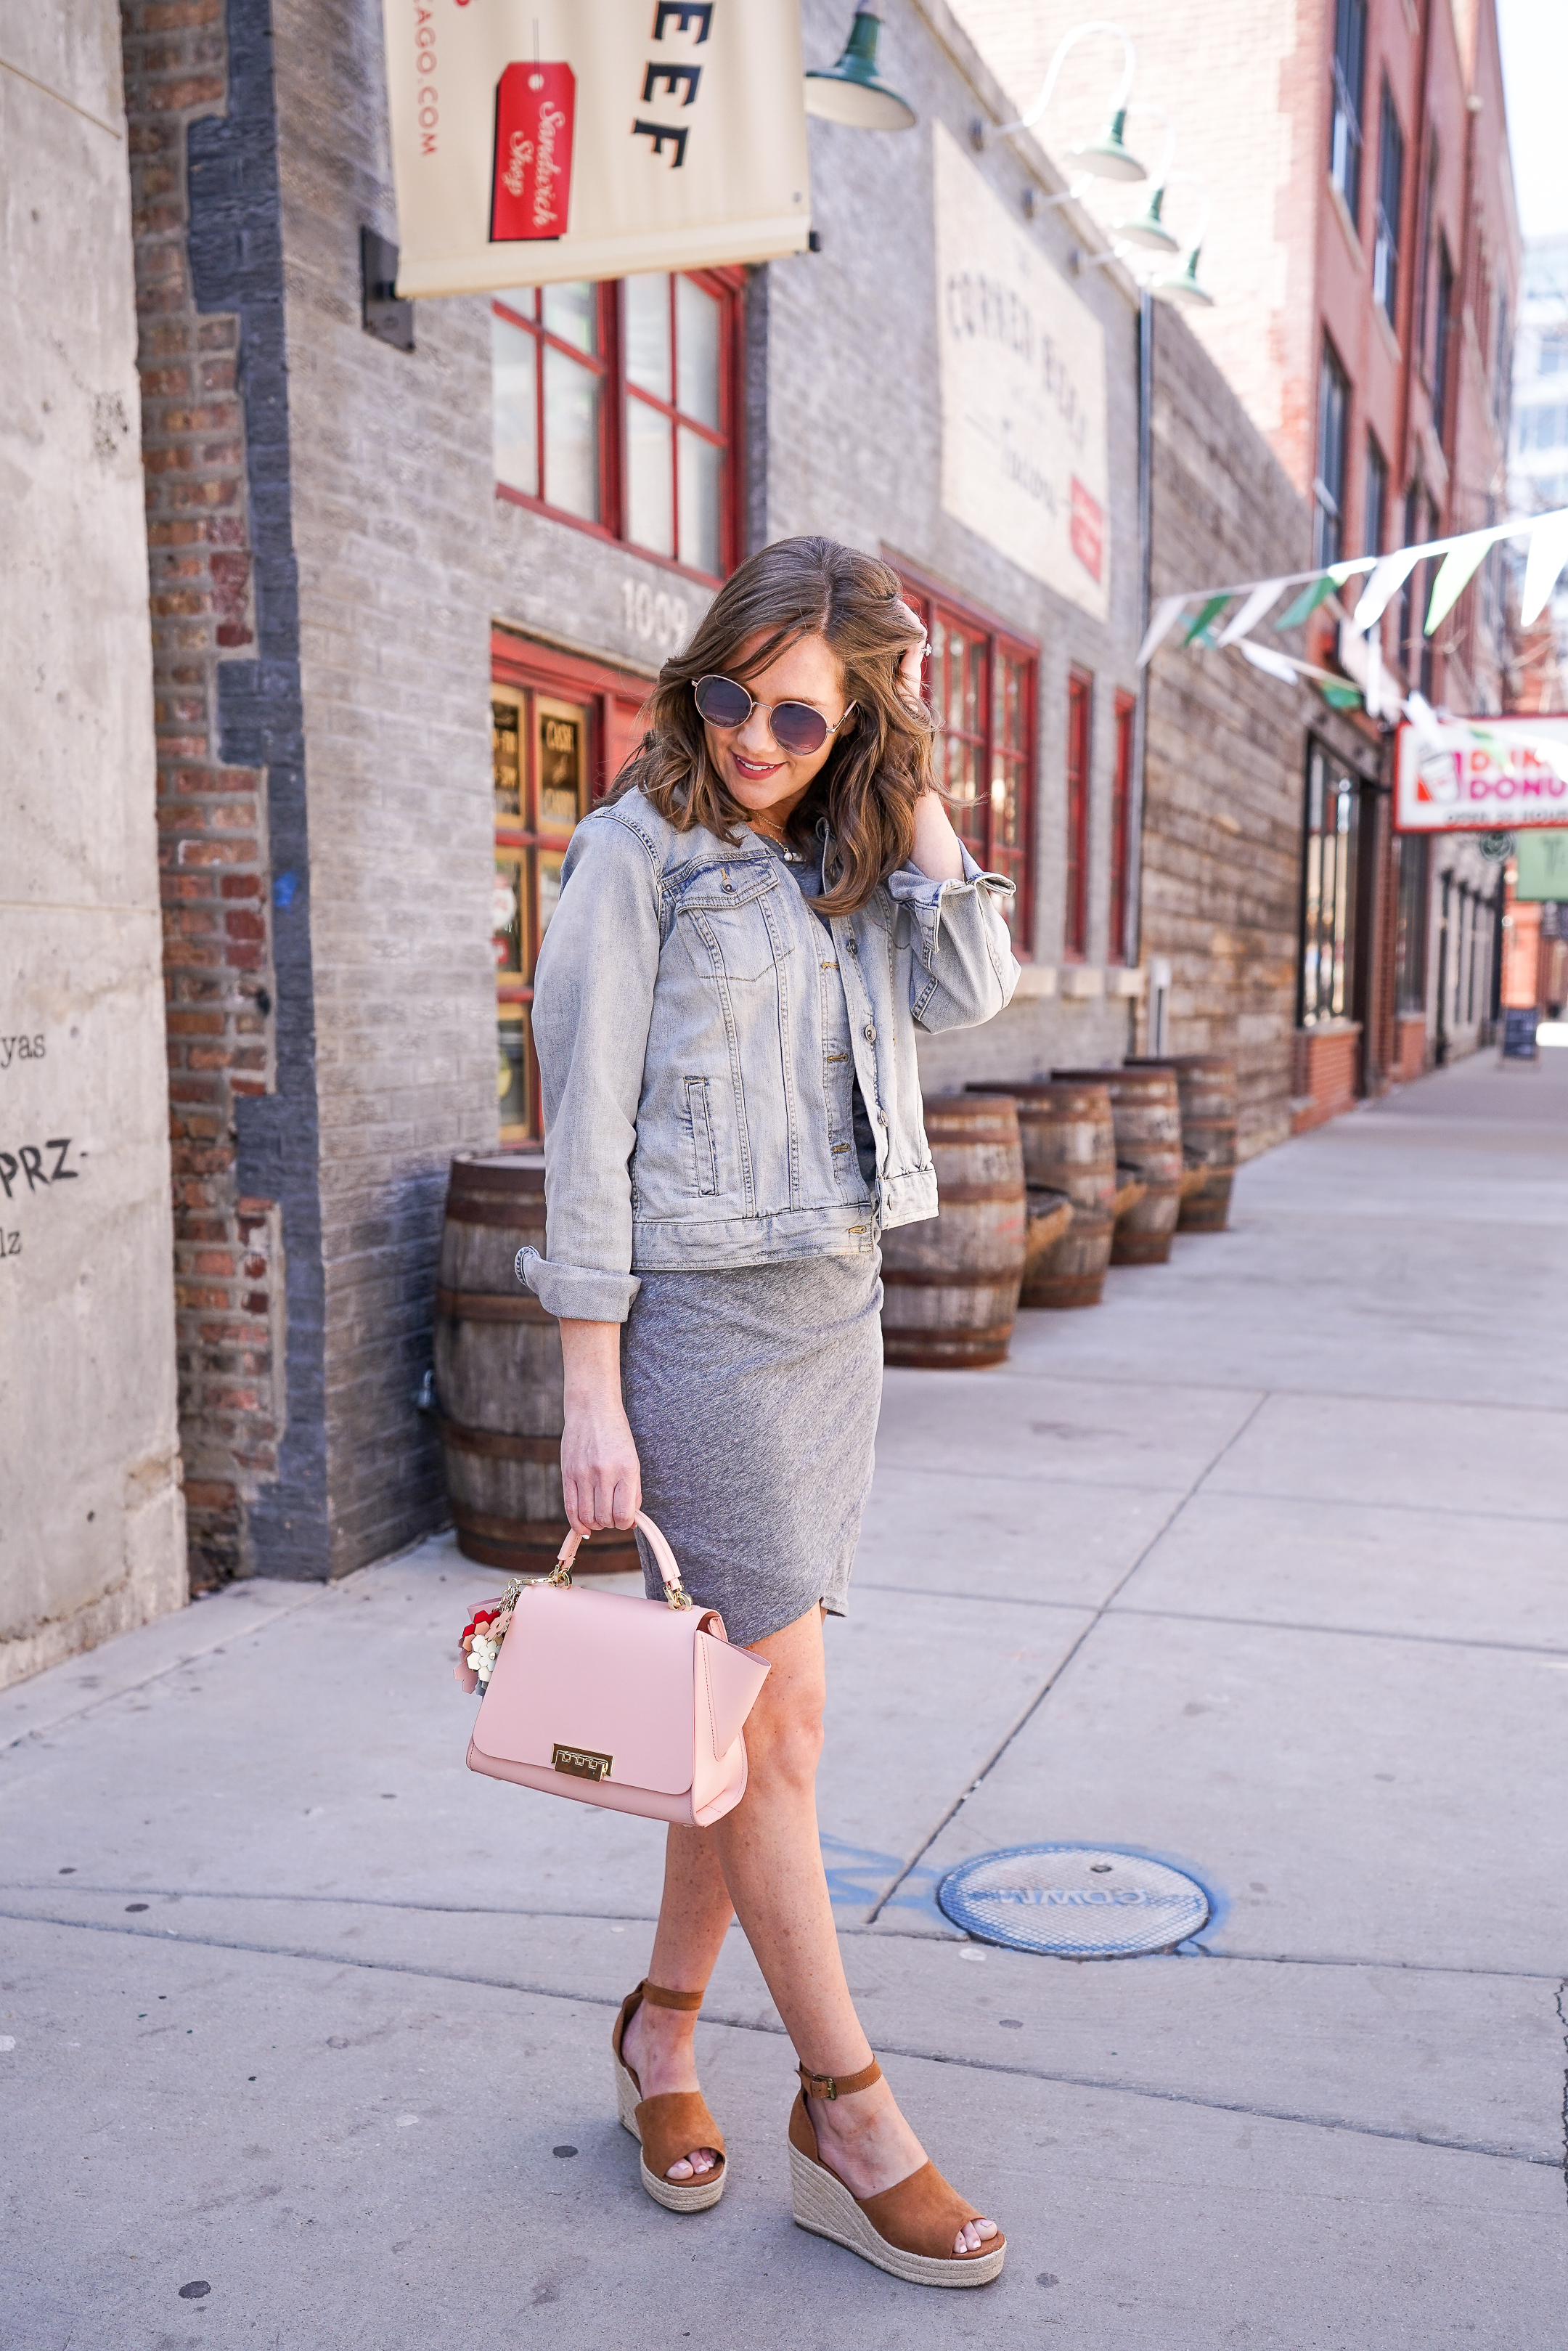 875d6613f744 insta-famous-leith-rouched-dress-easy-casual-summer-outfit-perfect-summer- outfit-formula-zac-posen-satchel-3